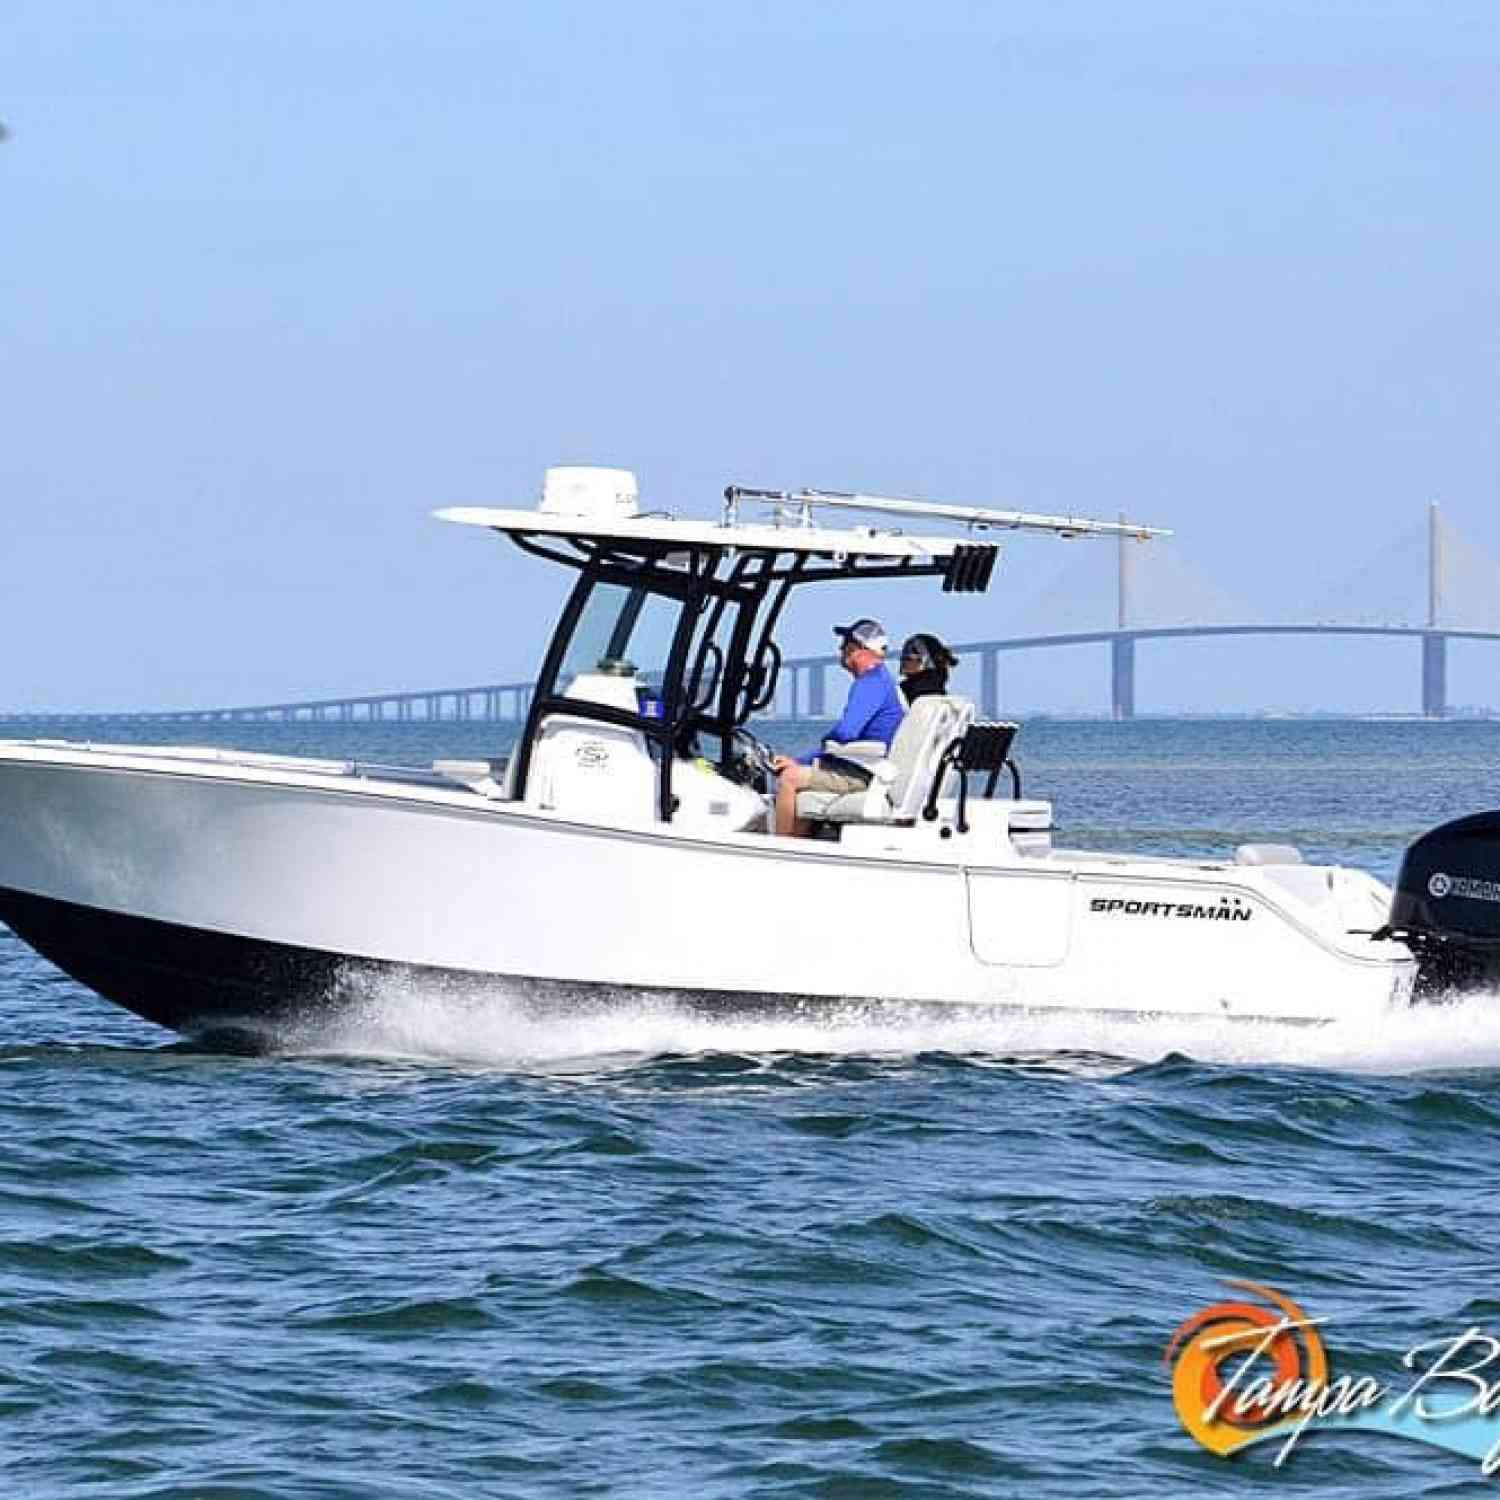 Title: florida winter time boating - On board their Sportsman Open 282TE Center Console - Location: anna maria island florida. Participating in the Photo Contest #SportsmanFebruary2021